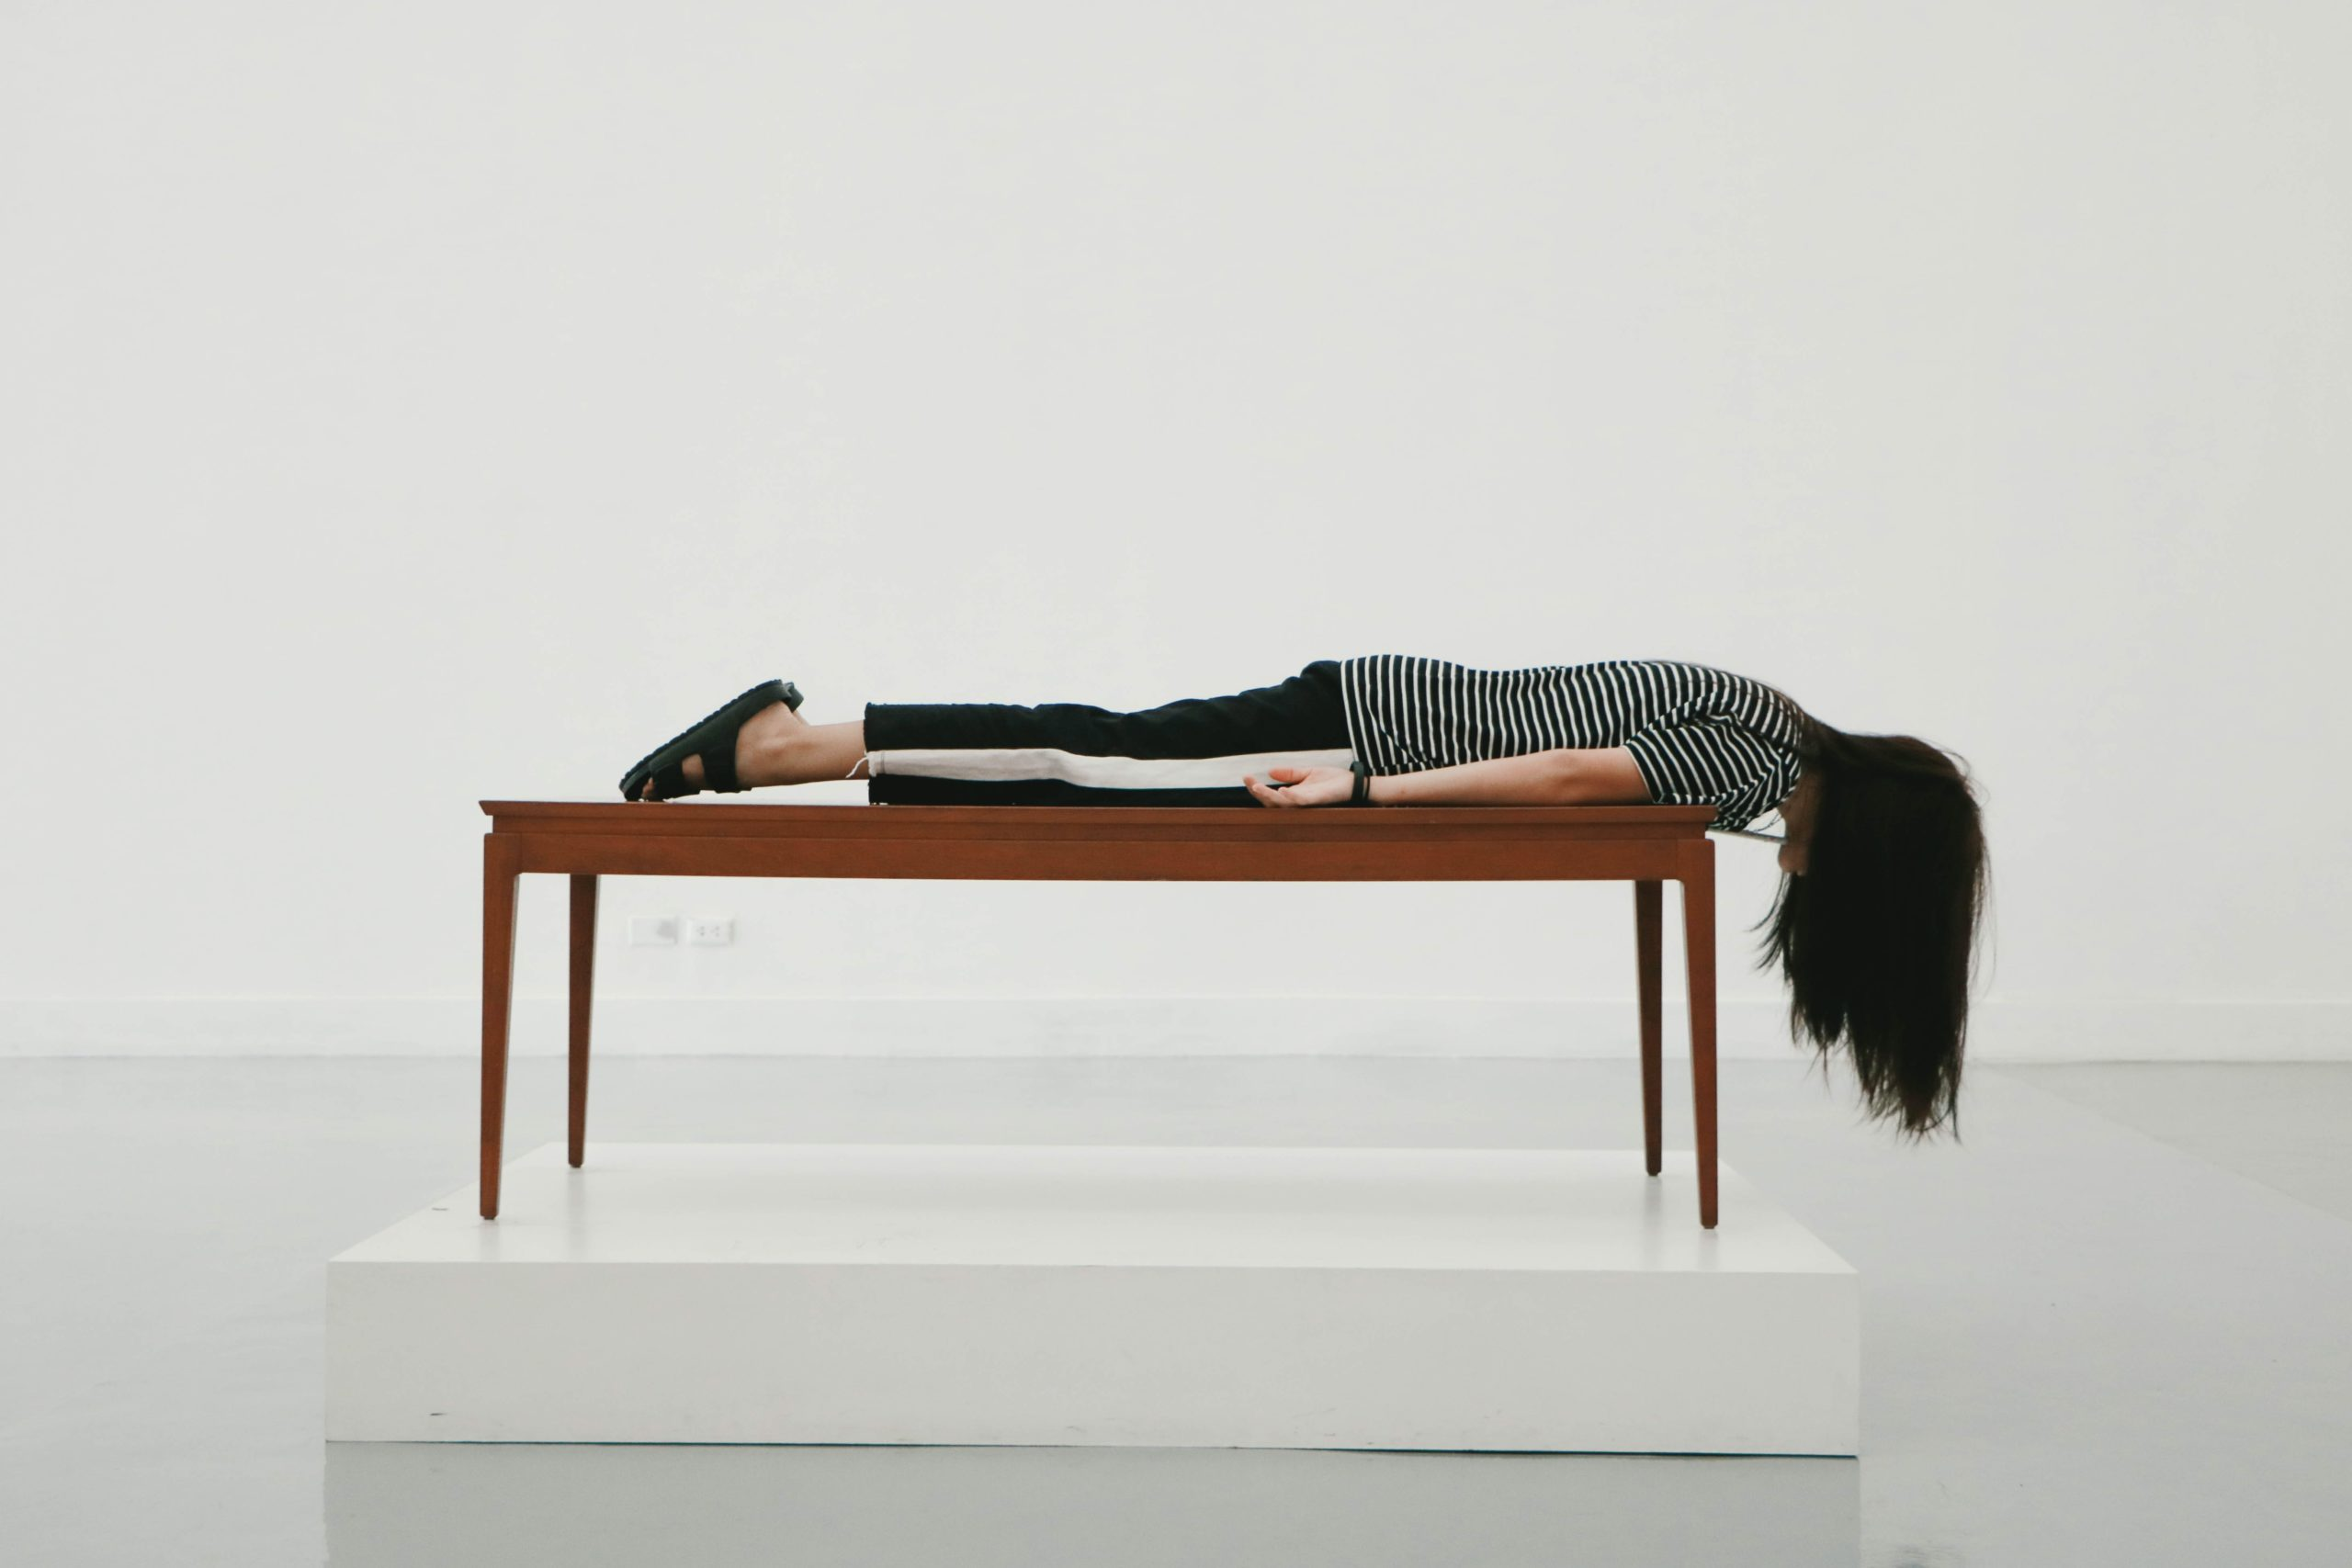 A woman lies facedown on a table to represent an exhausted student during finals week.